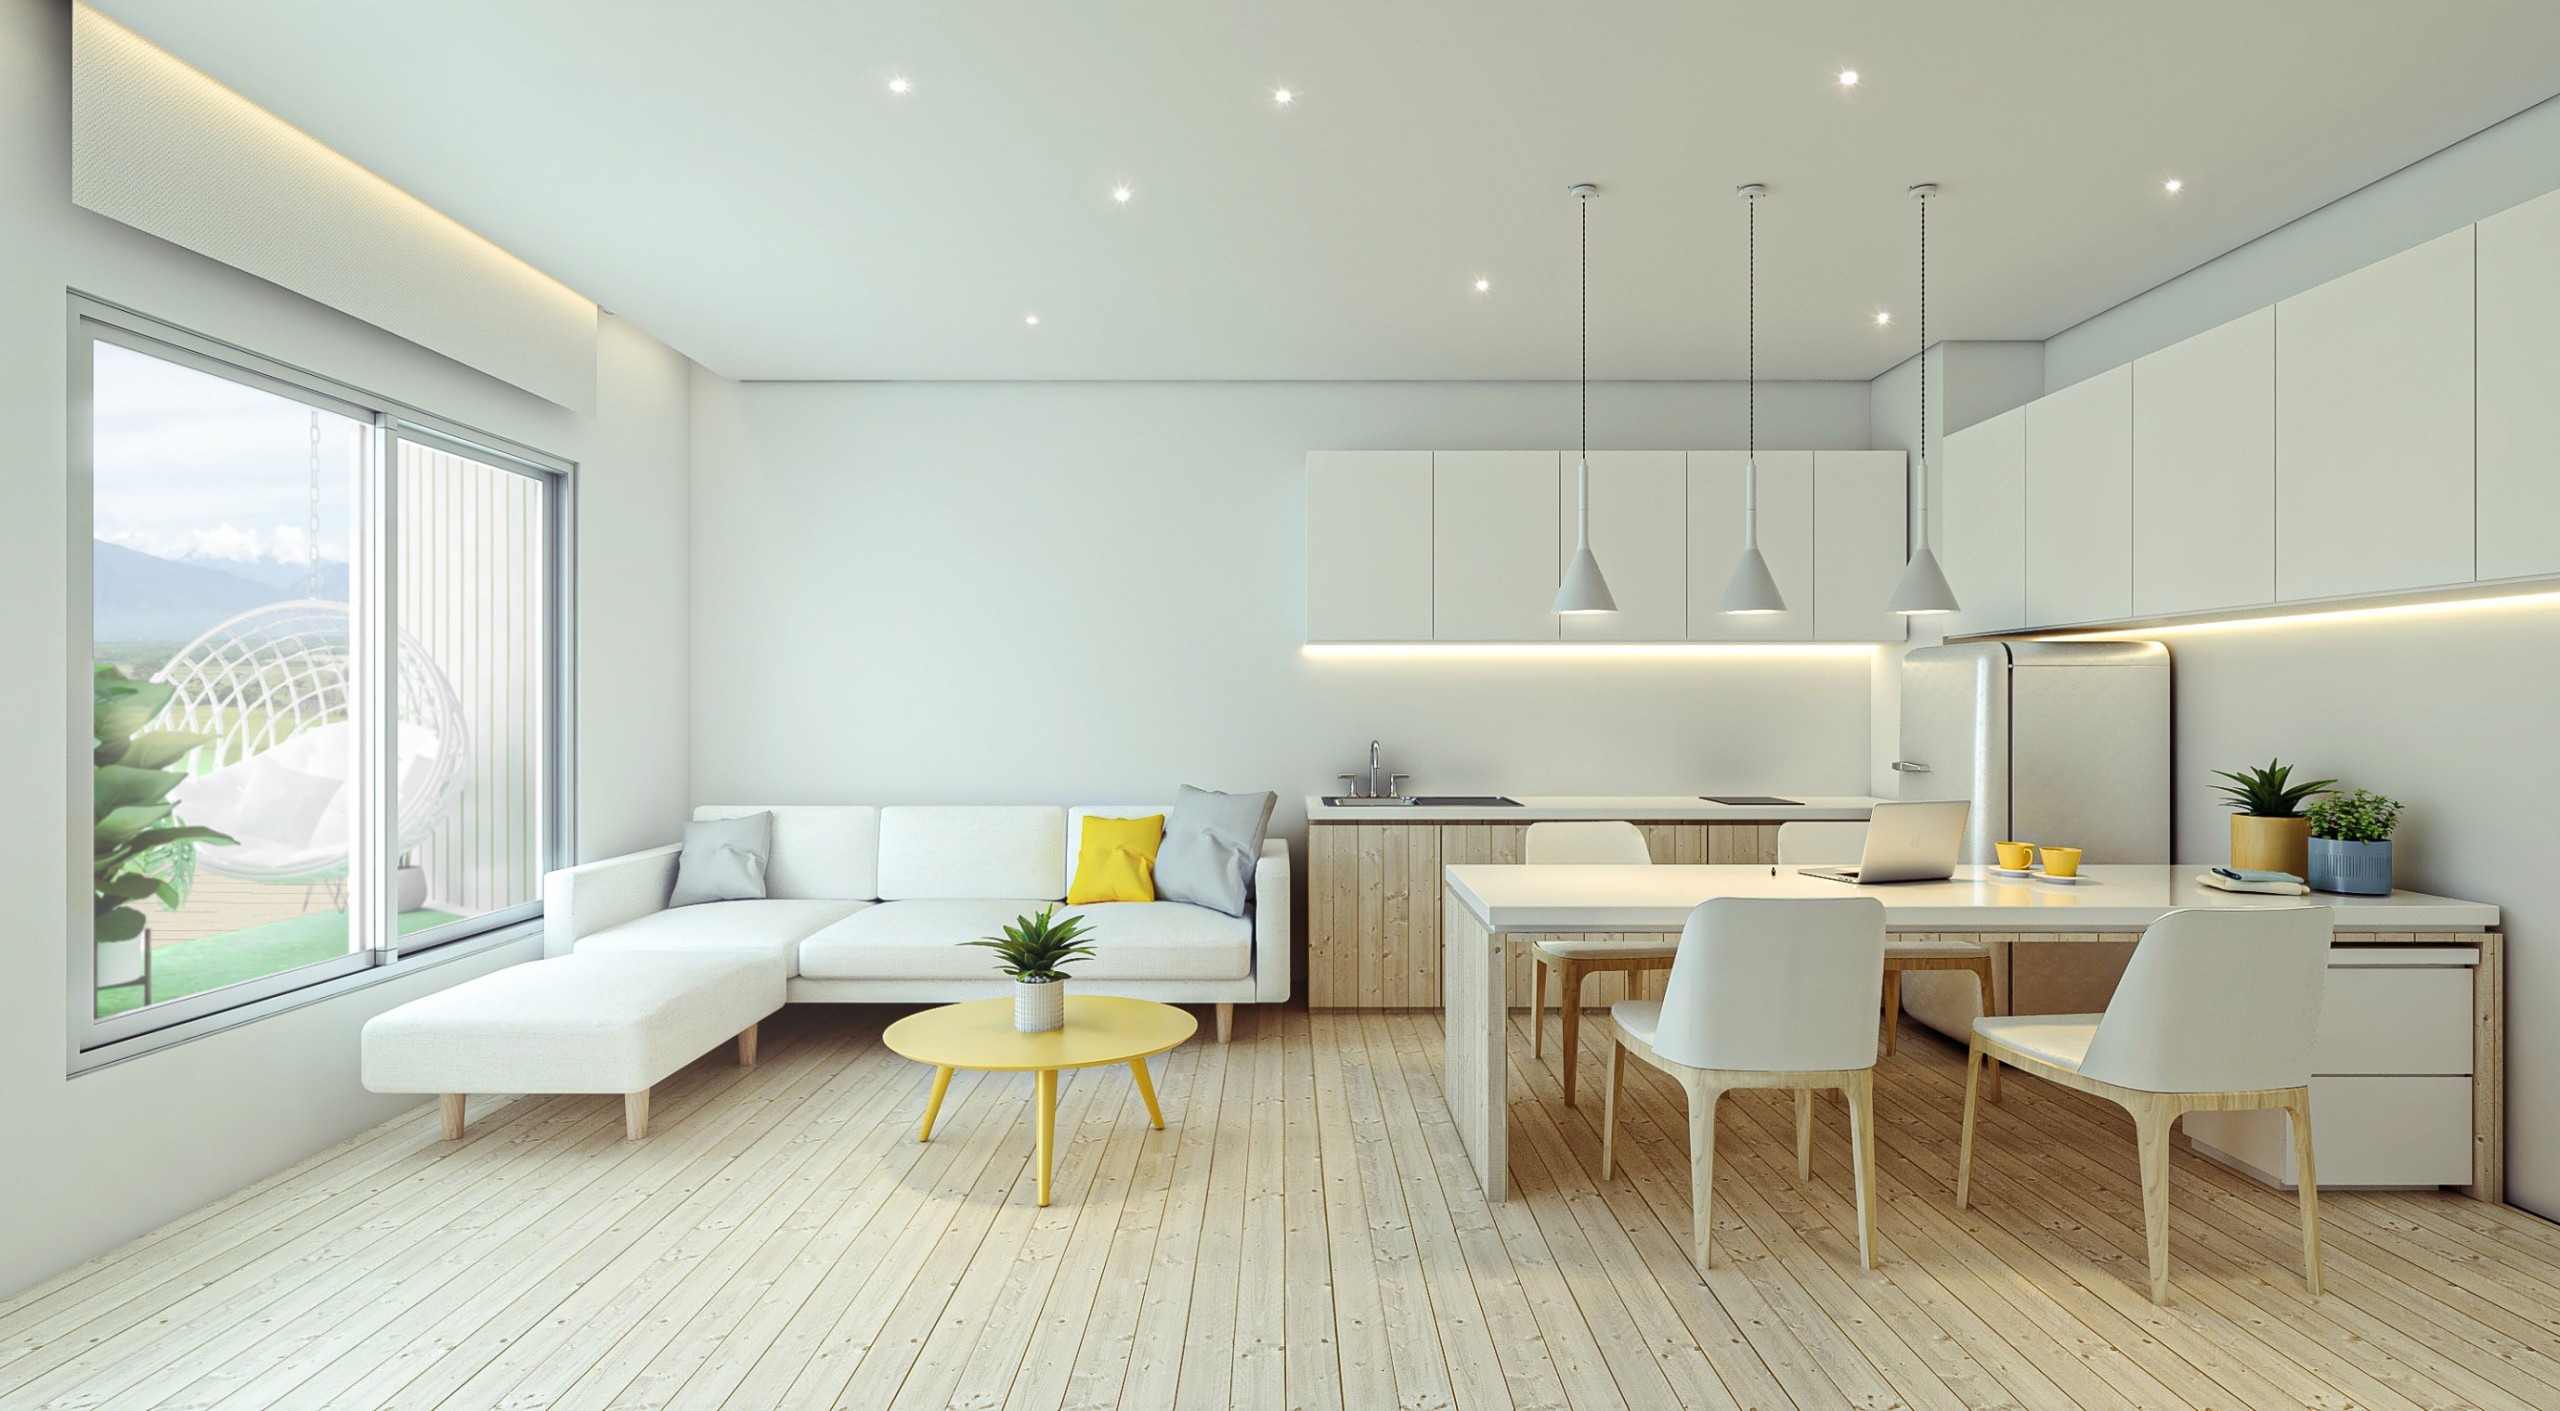 德築-DEZU-project-Zuxing-architecture-build-rendering-3